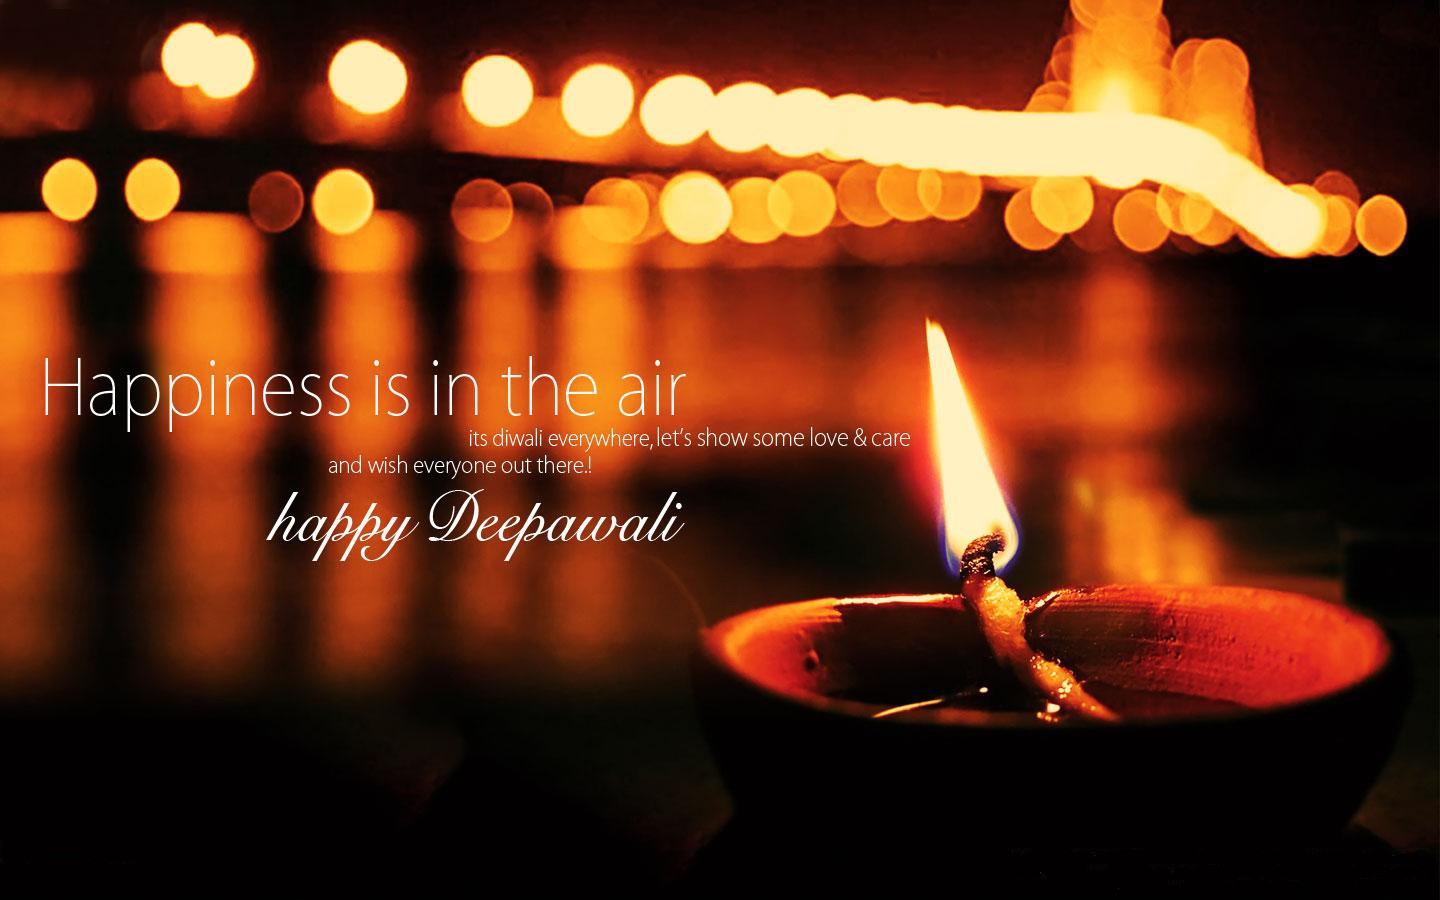 HD Wallpaper Happy Diwali